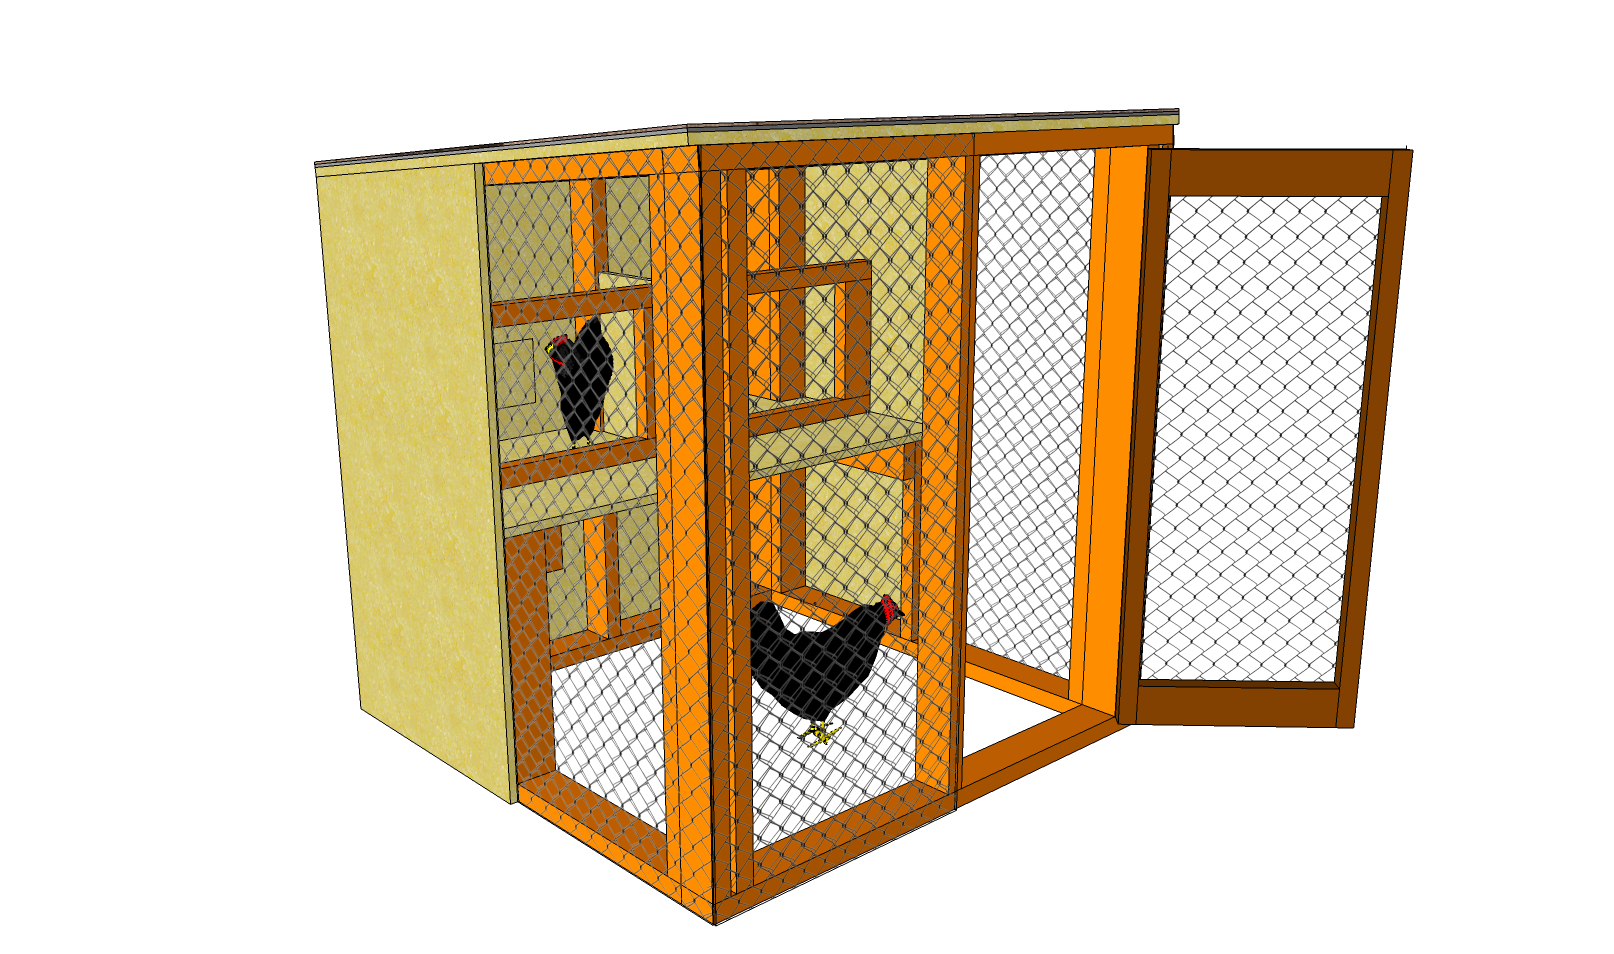 Chicken house plans chicken coop plans free download with for Plans for a chicken coop for 12 chickens